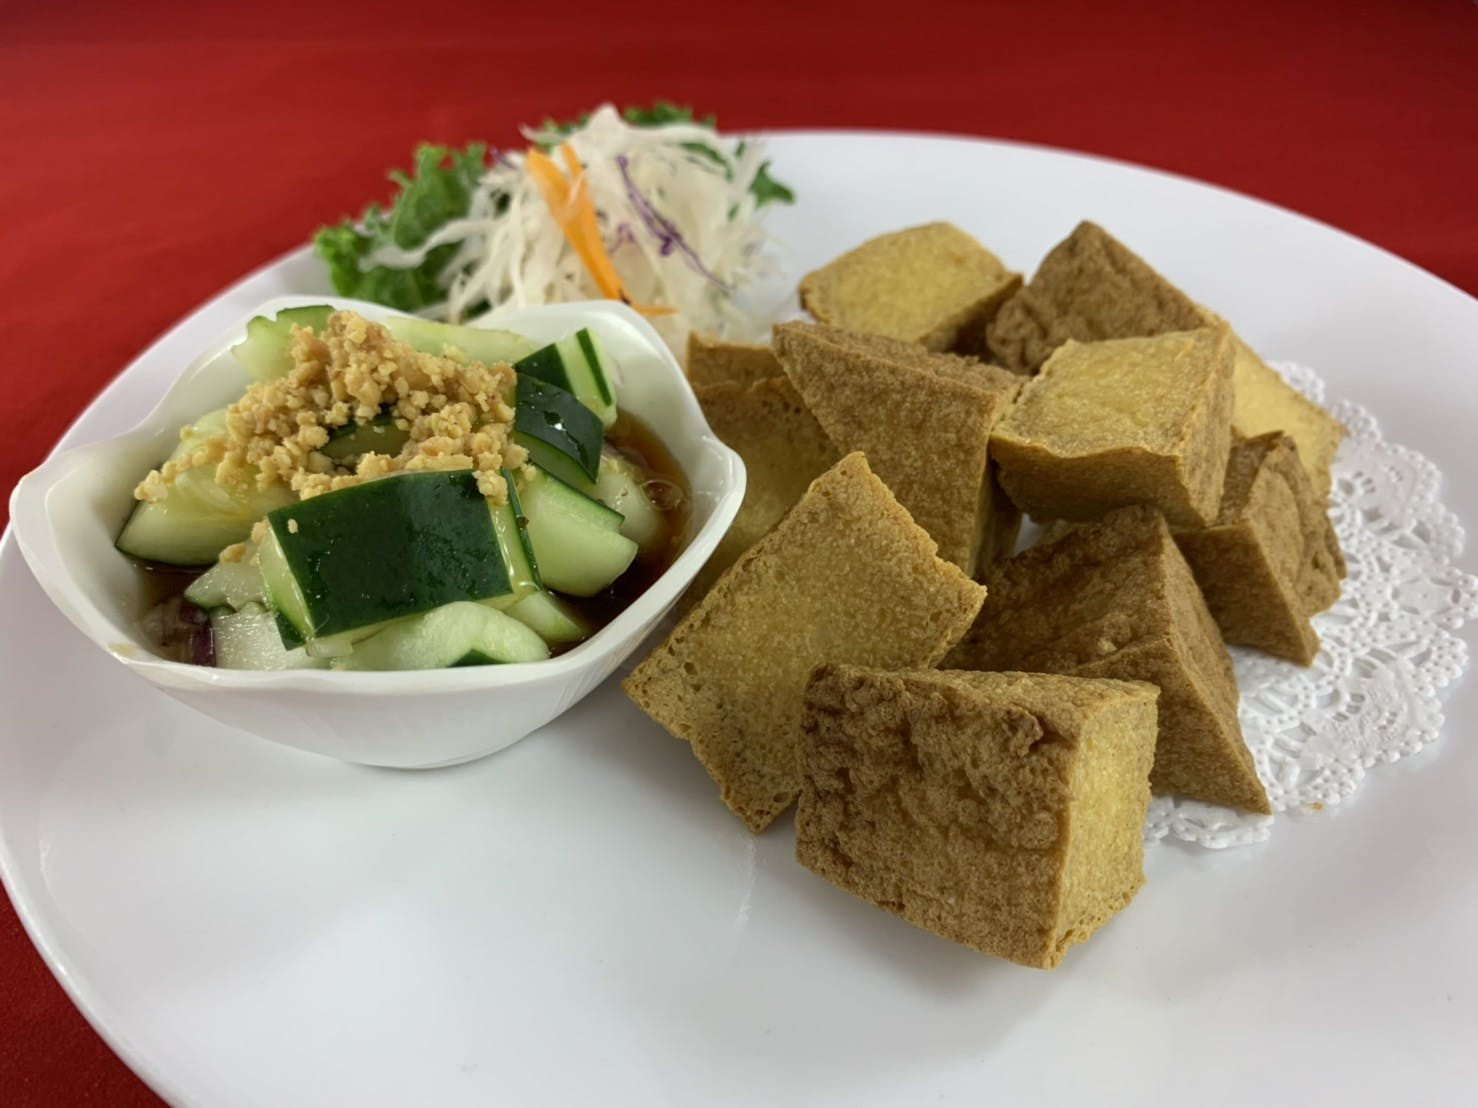 8. Taw Hoo Todd (Dinner) from Sa-Bai Thong - University Ave in Madison, WI